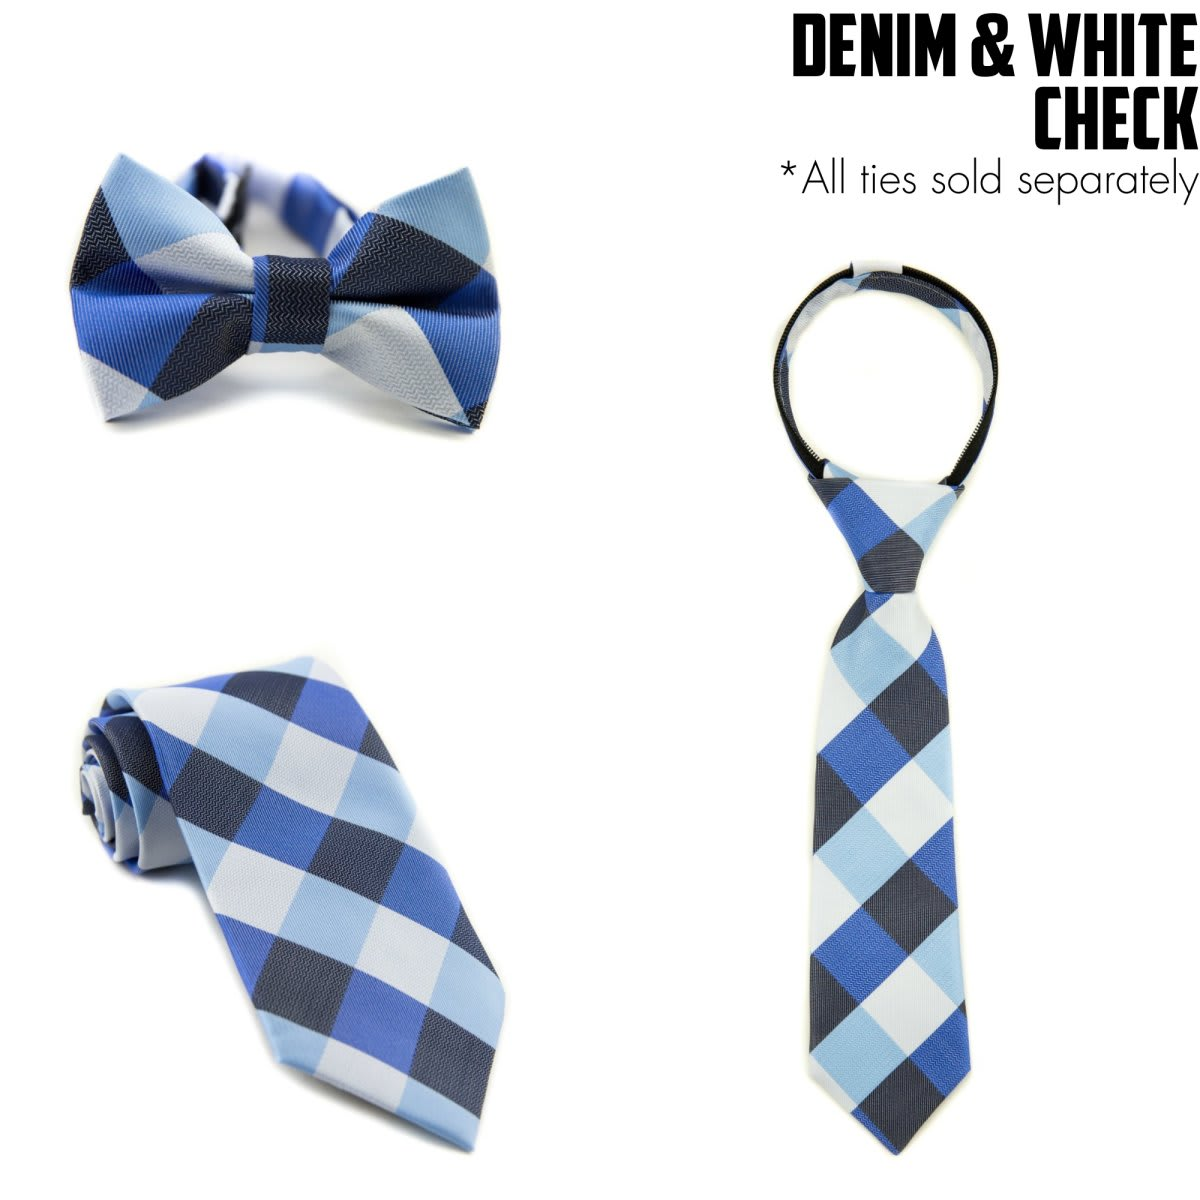 dd36a9fb0dfc Daddy & Me Ties & Bow Ties | New Styles! Previous Image. Next Image